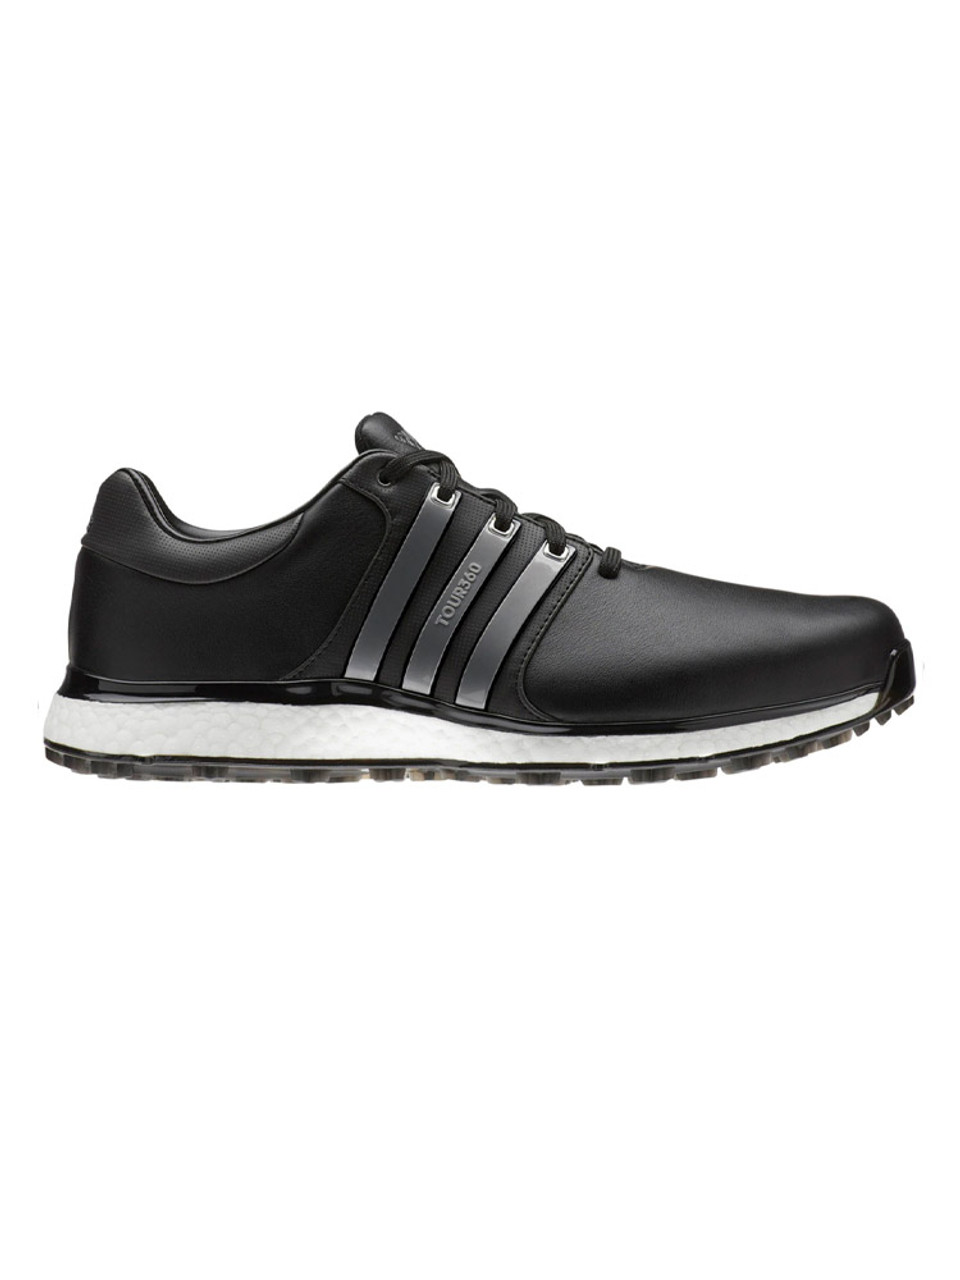 adidas Tour360 XT SL Wide Shoes Black | adidas US